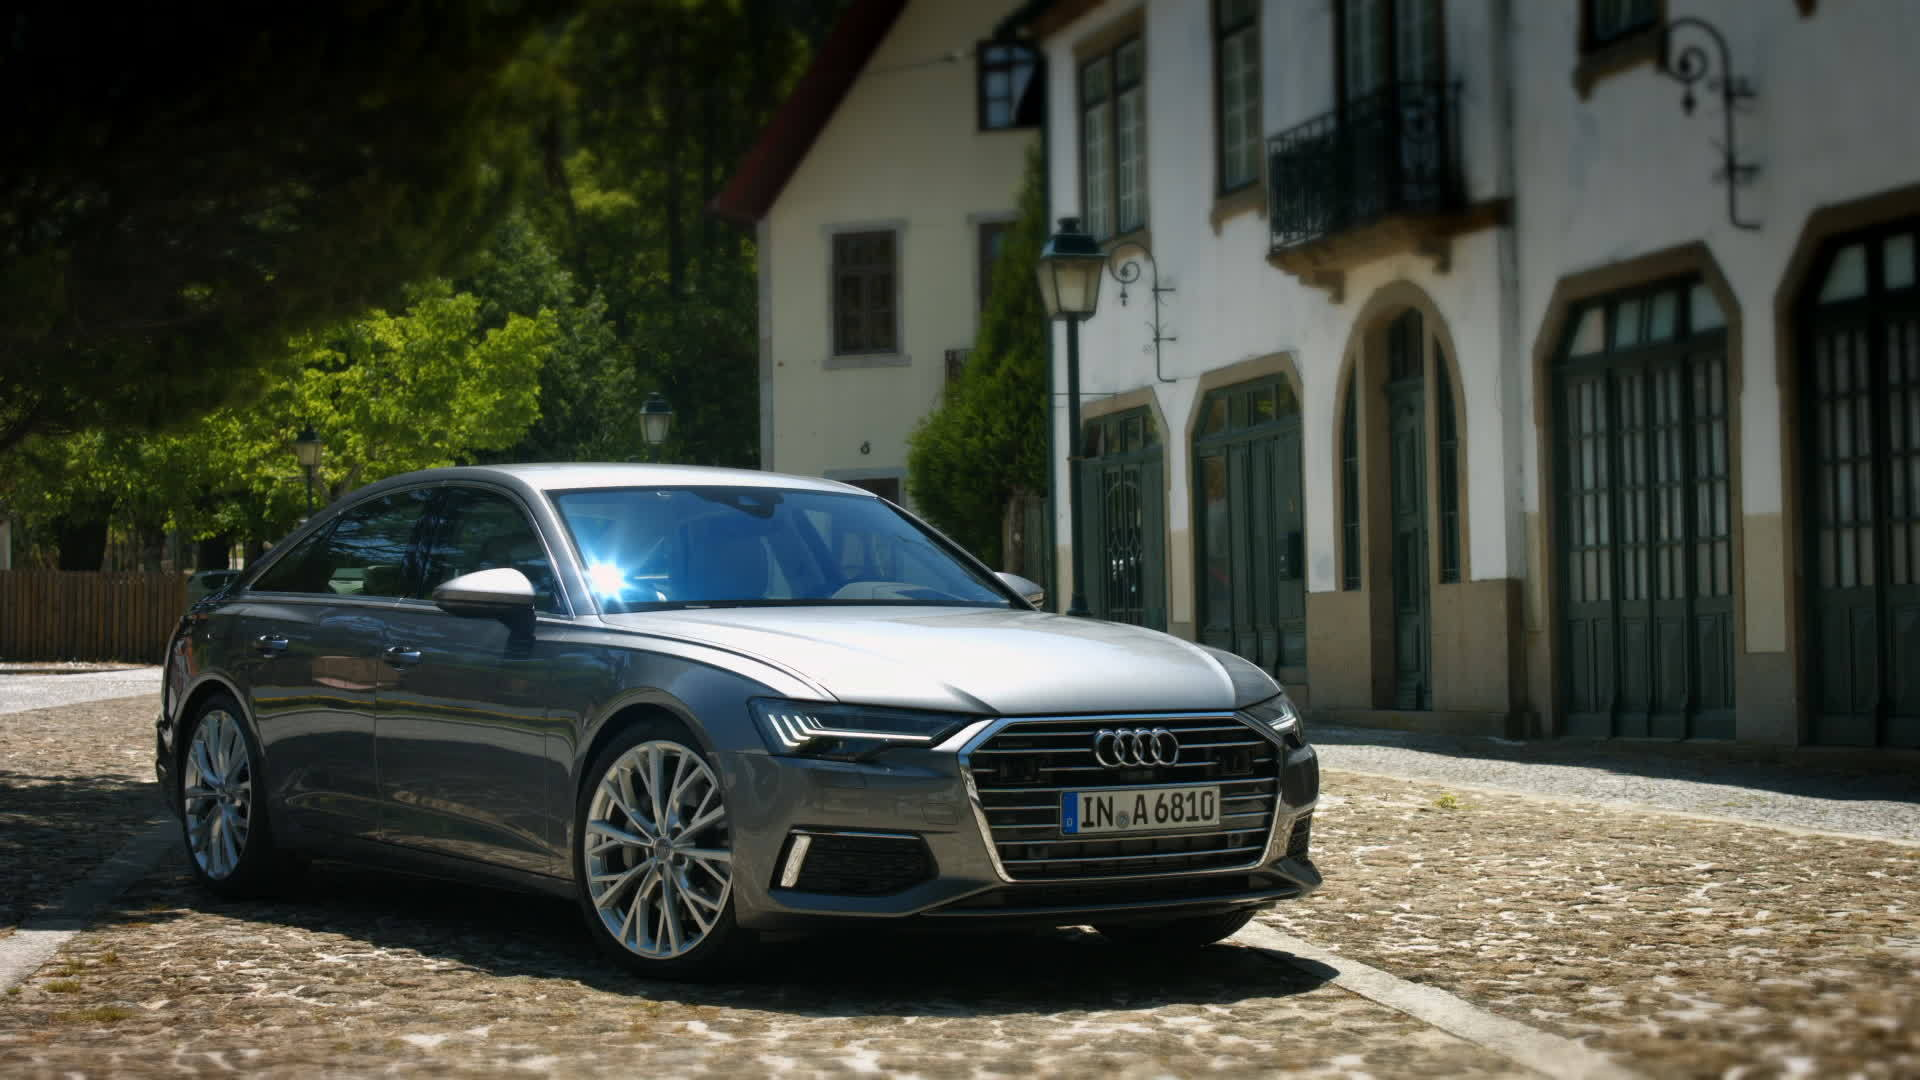 Audi A6 Sedan on Location